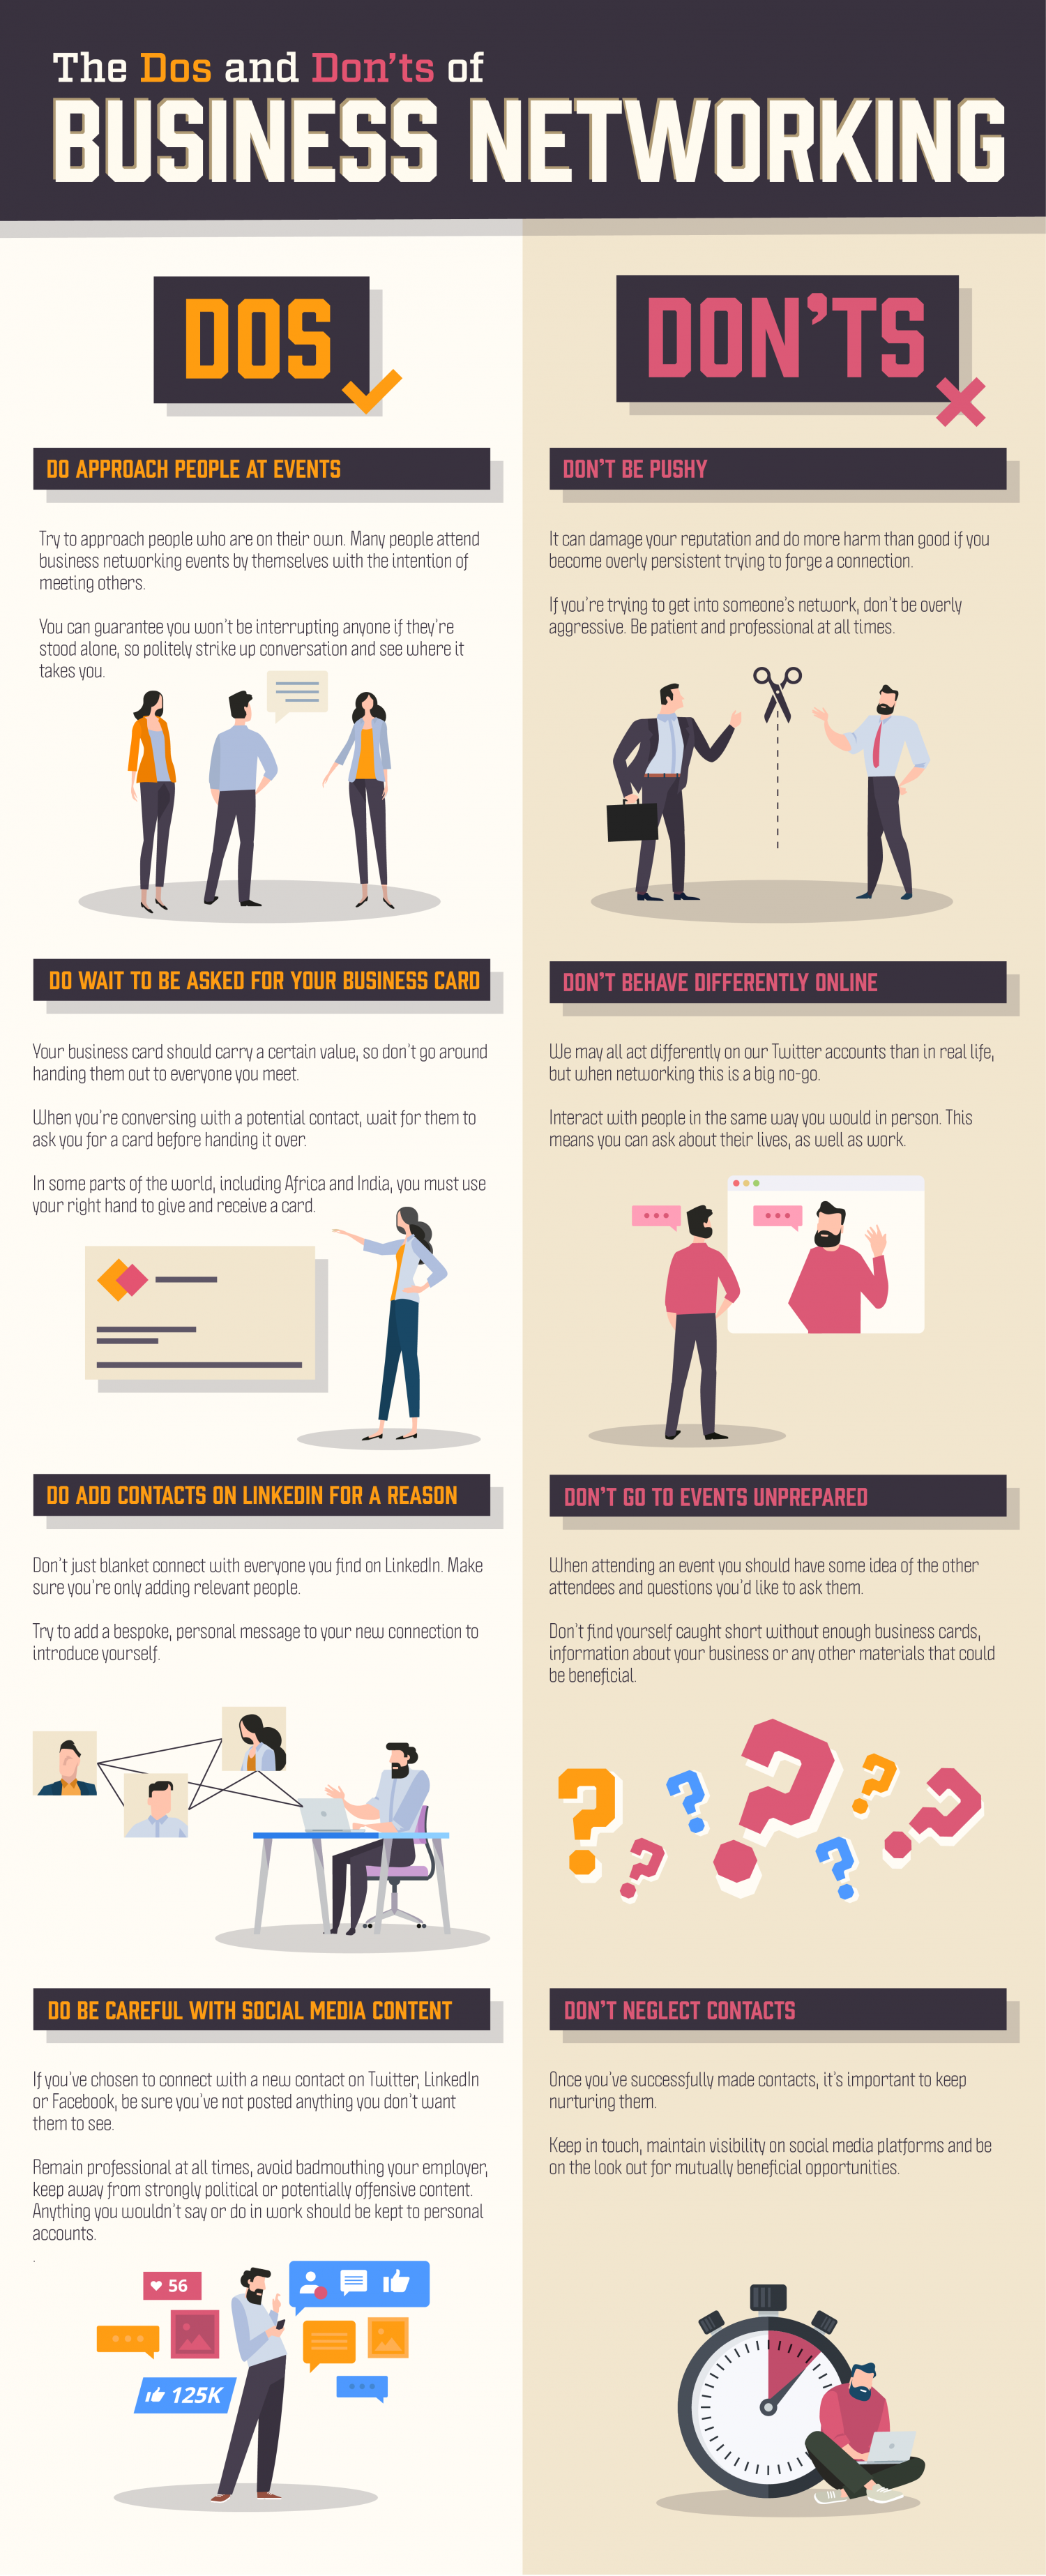 The Do's and Don'ts of Business Networking Infographic